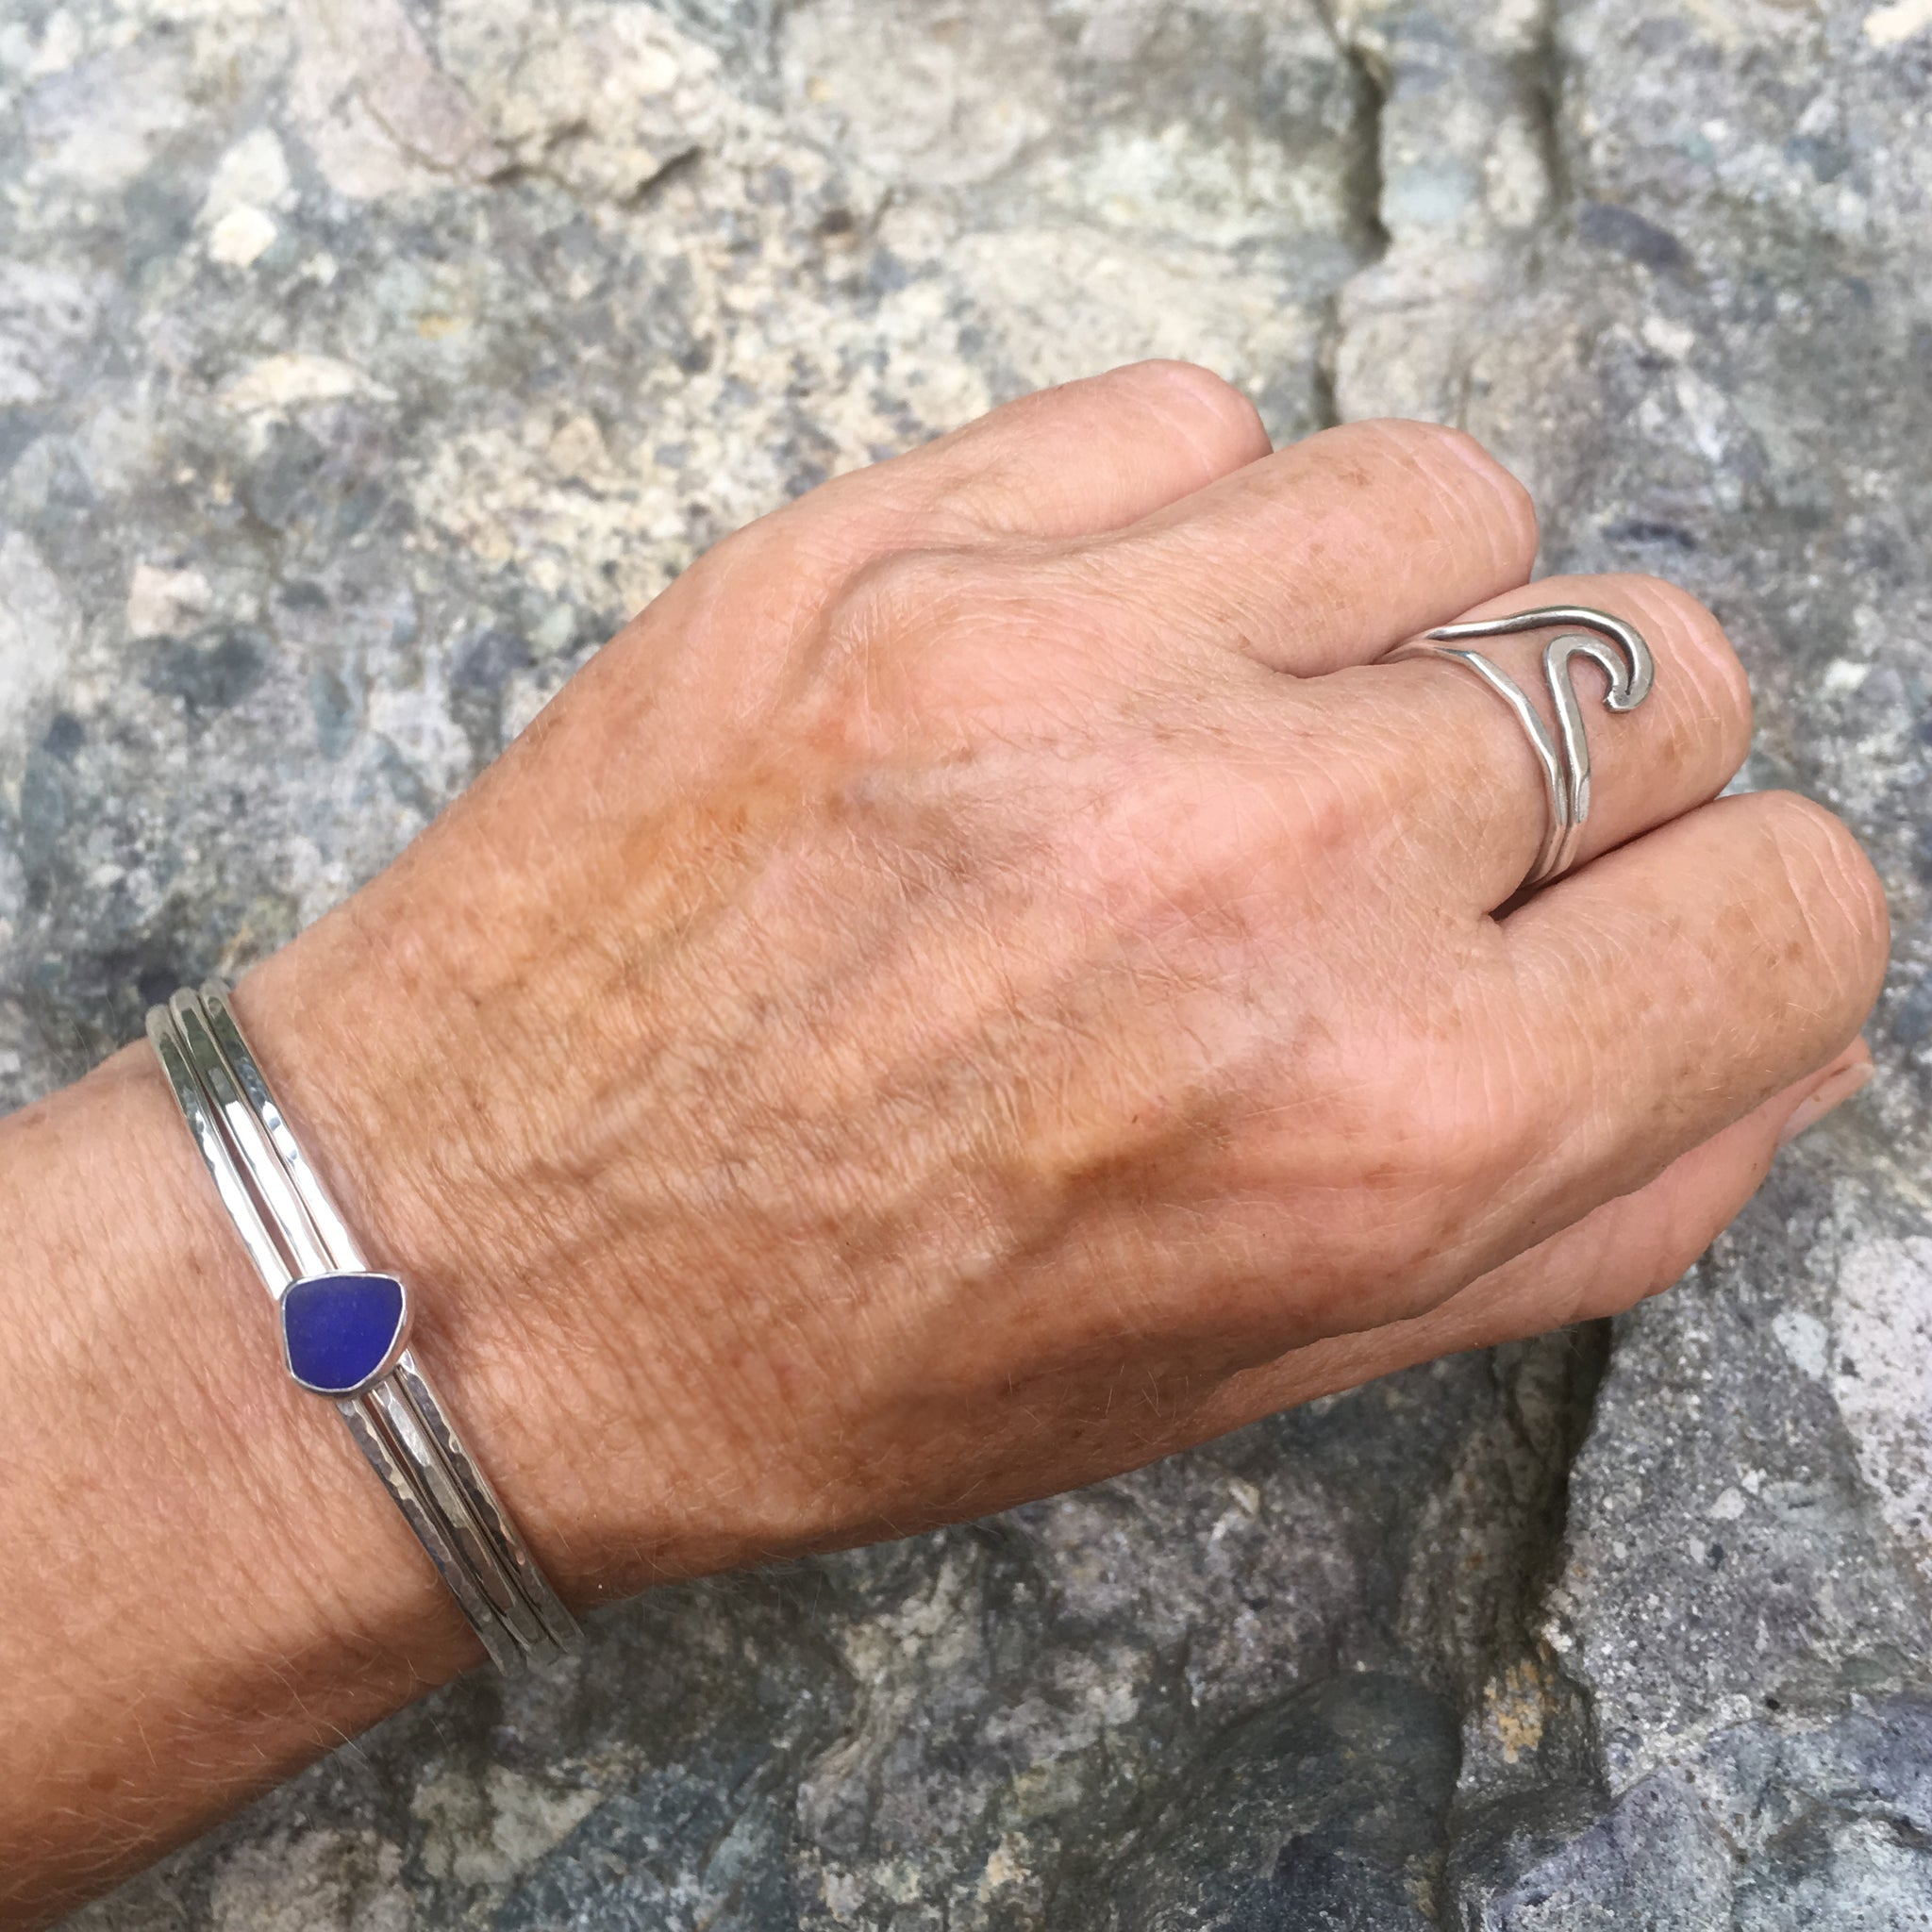 Beachcomber-Seaglass-Stacking-Cuff-Cobalt-Blue-Shown-On-Wrist